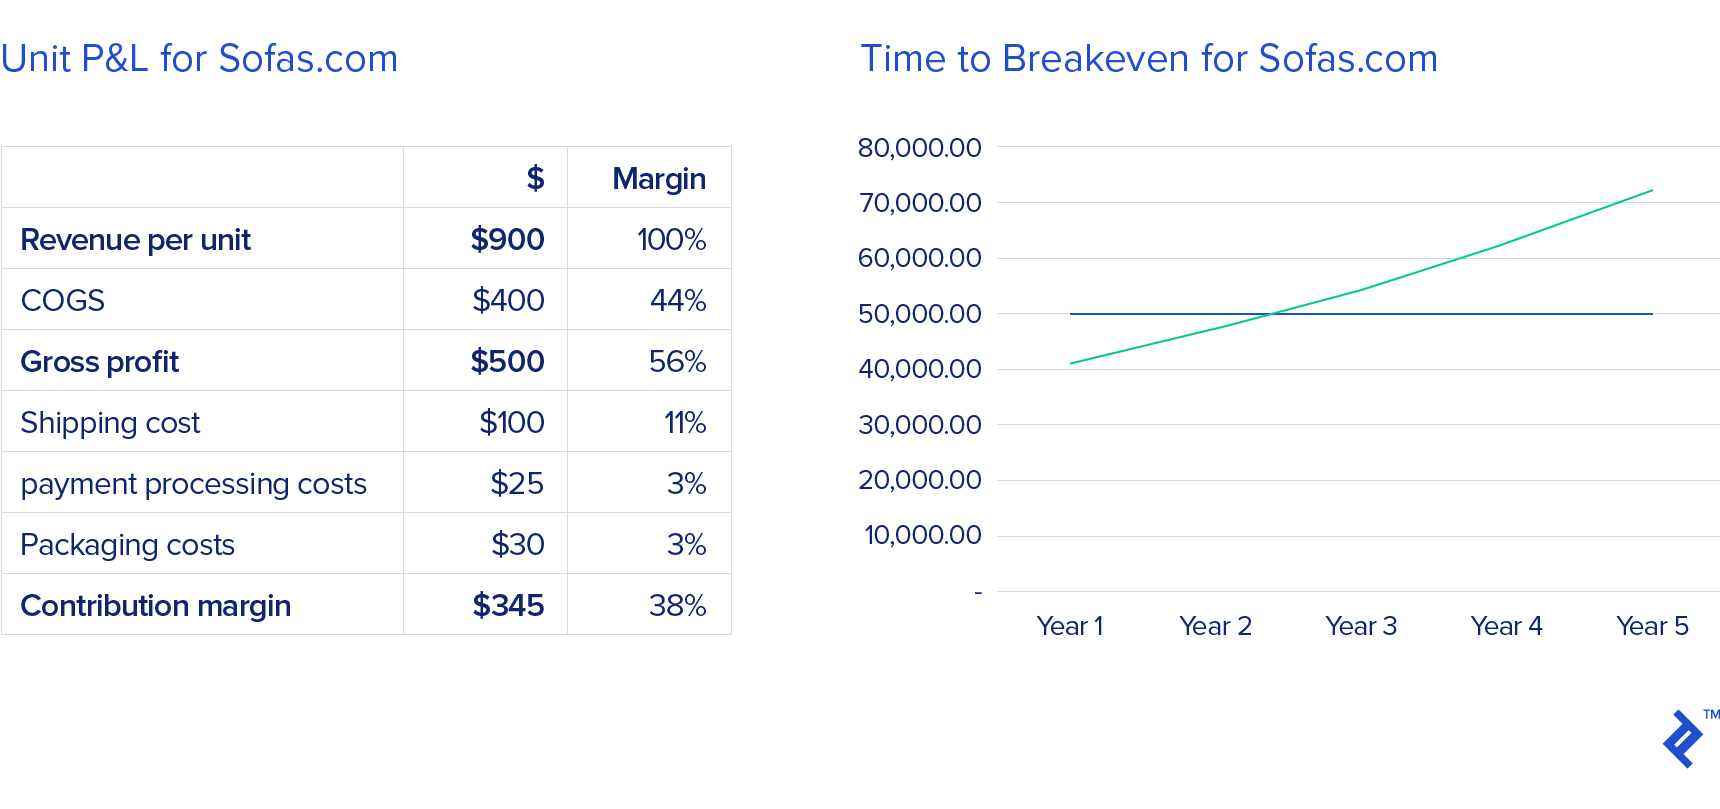 A table of unit profit and loss for sofas.com on the left, and a graph representing time to break even for sofas.com on the right